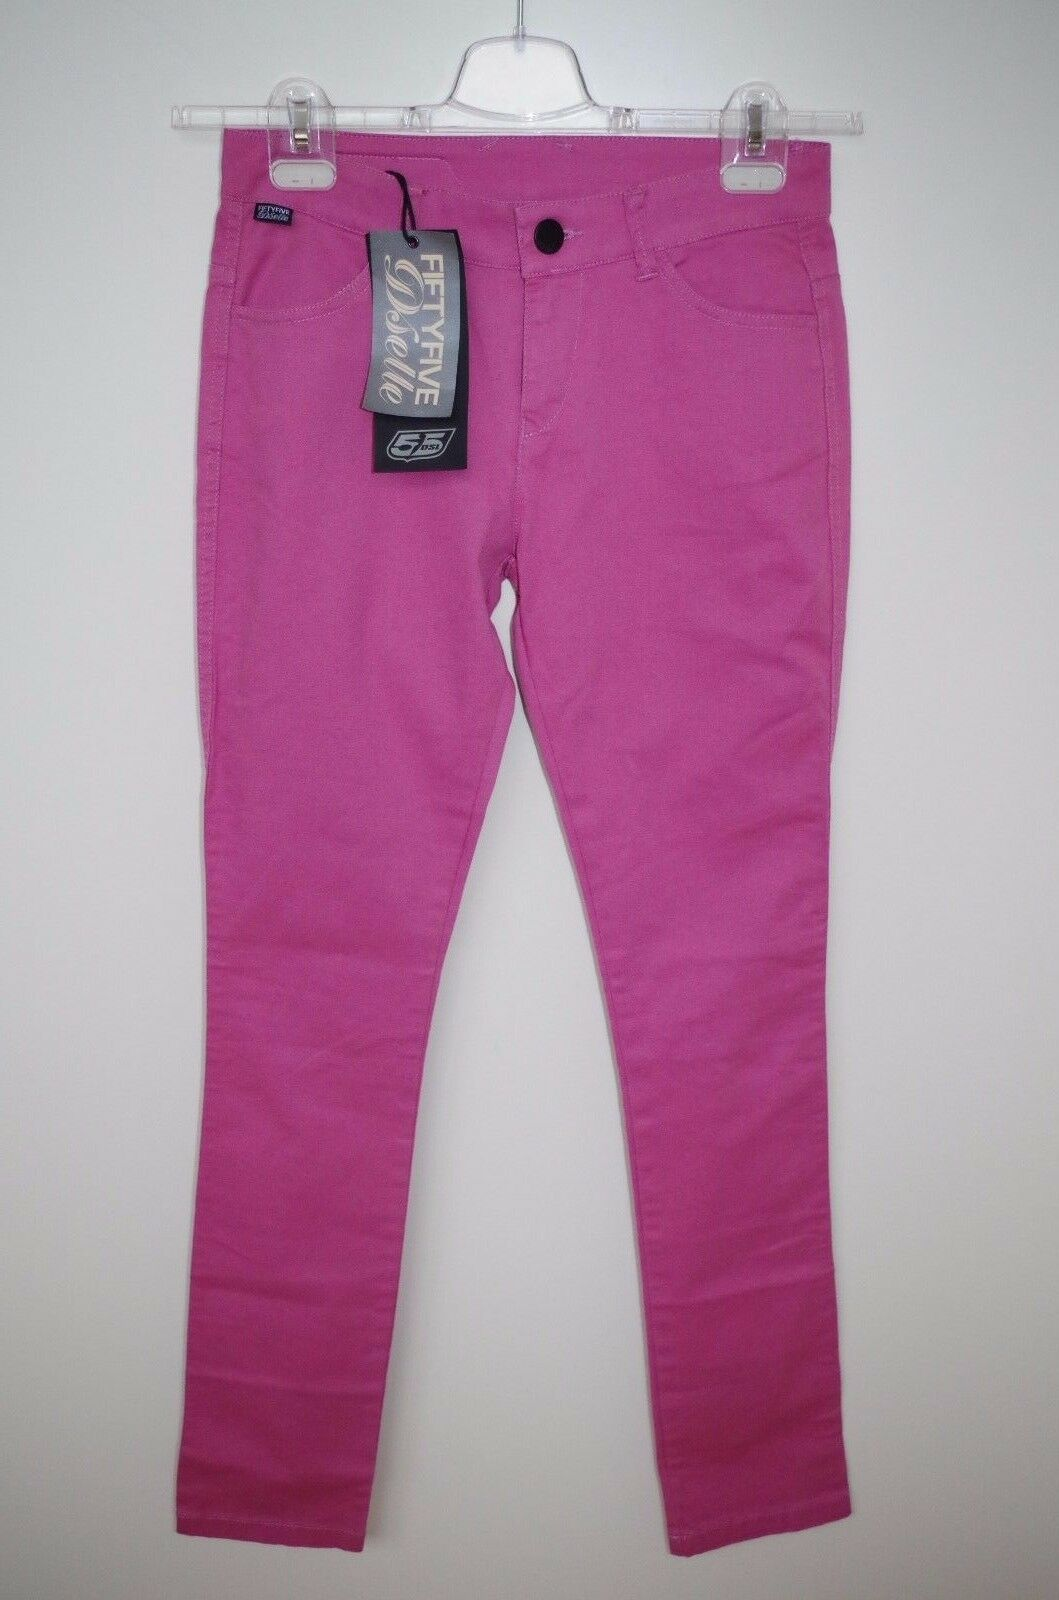 55 DIESEL sz W28 WOMENS STRETCH DENIM JEANS SLIM SKINNY LOW WAIST PINK PURPLE